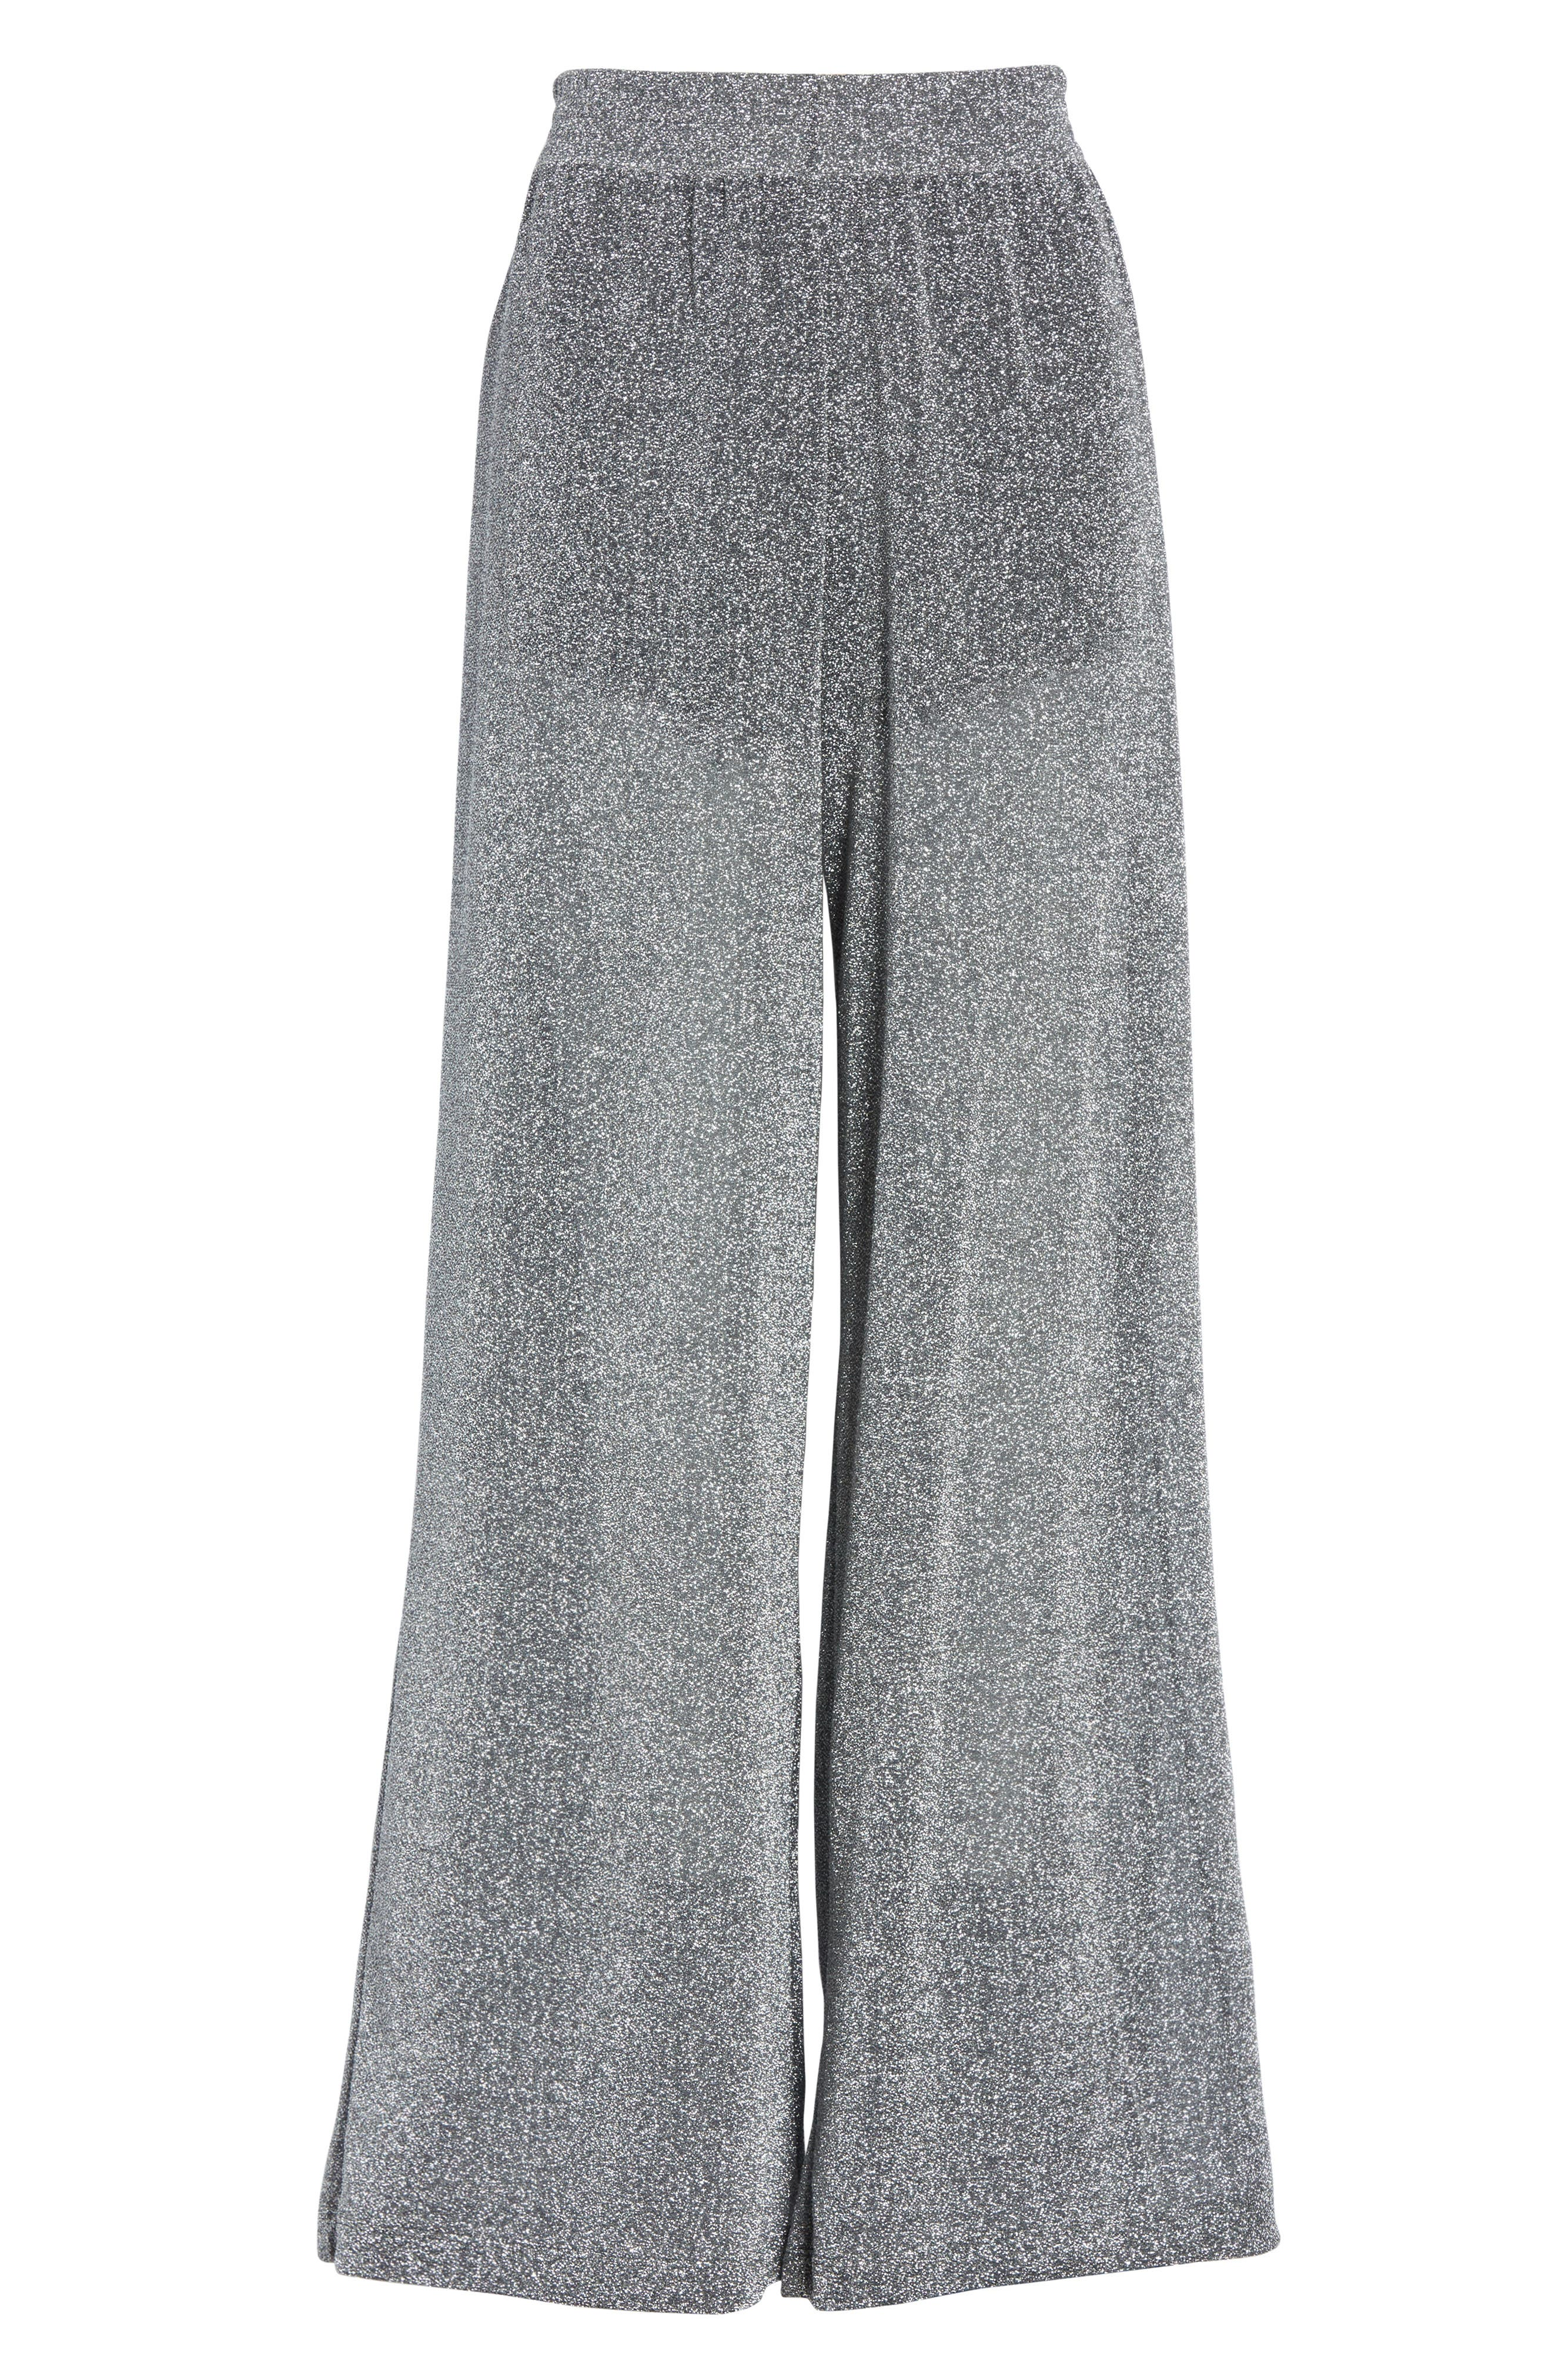 Metallic Jersey Wide Leg Pants,                             Alternate thumbnail 7, color,                             Grey